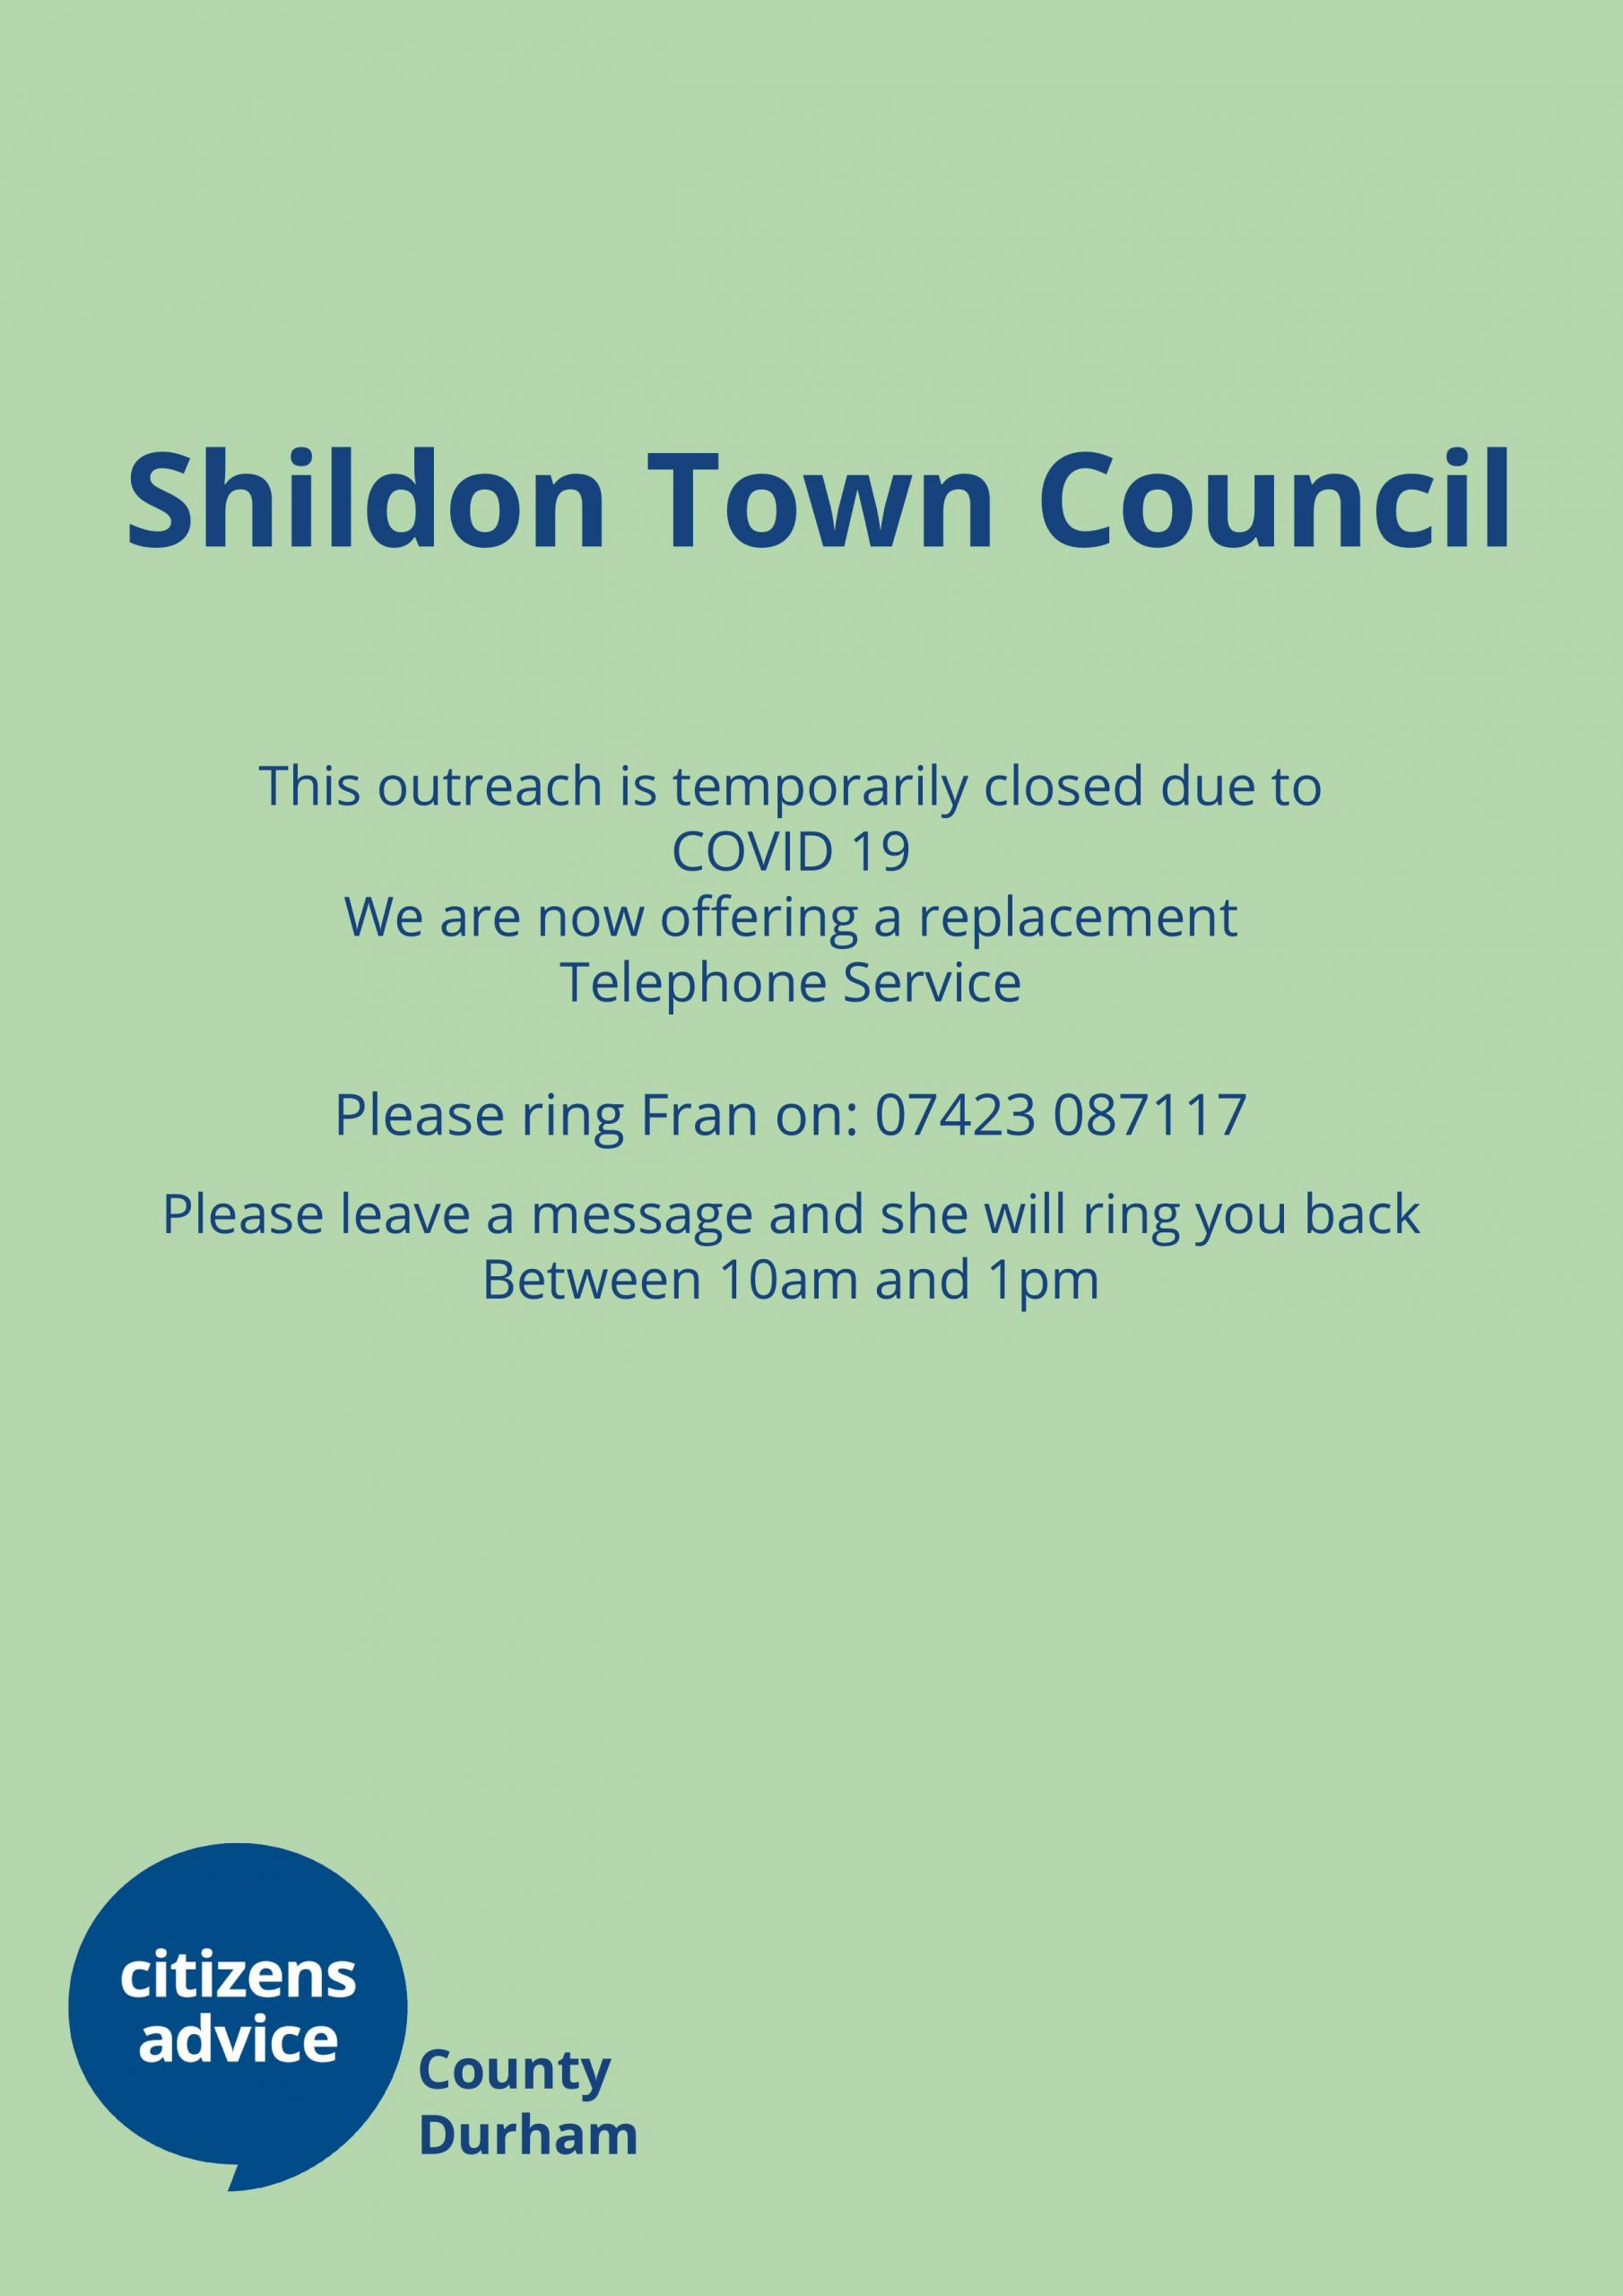 Shildon – Outreach closed but please call…